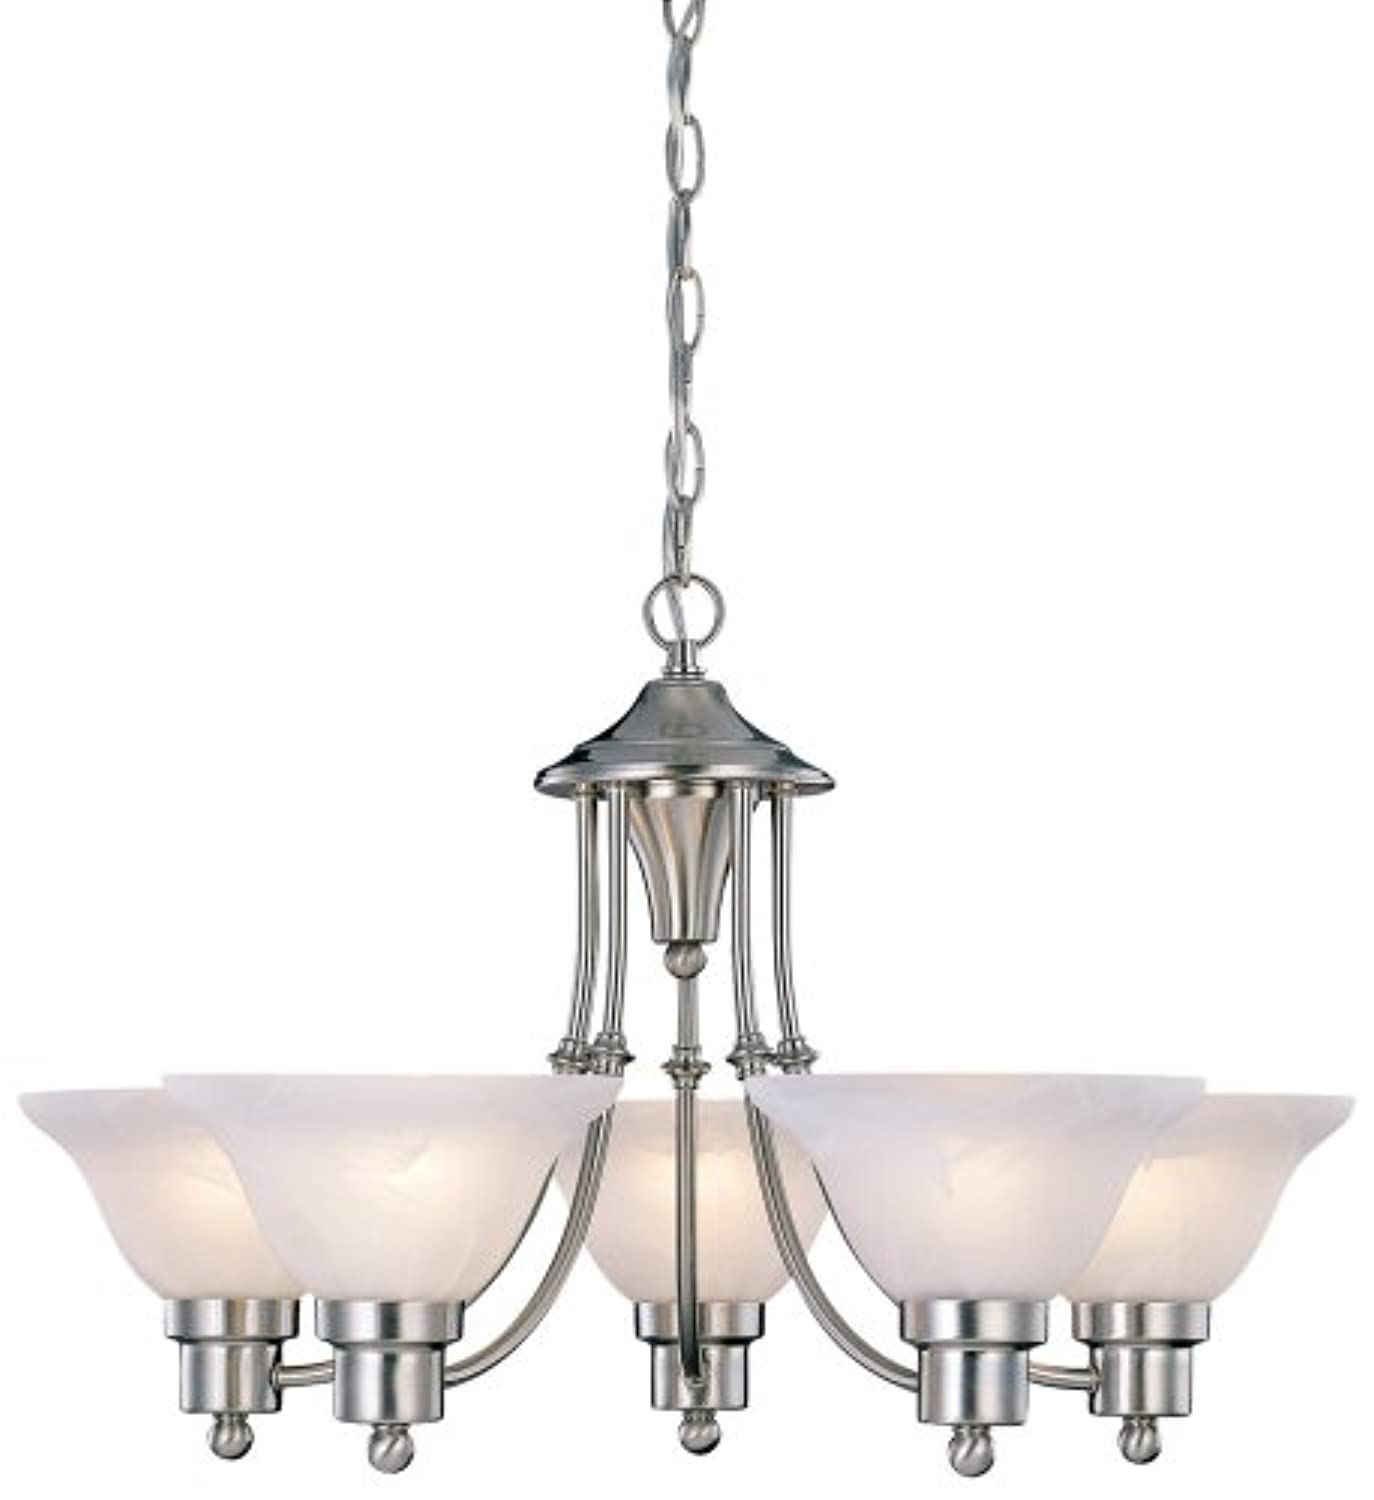 "Classier: Buy Hardware House Hardware House 544452 54-4452 Bristol 5 Light Chandelier, 24""x15"", Satin Nickel"